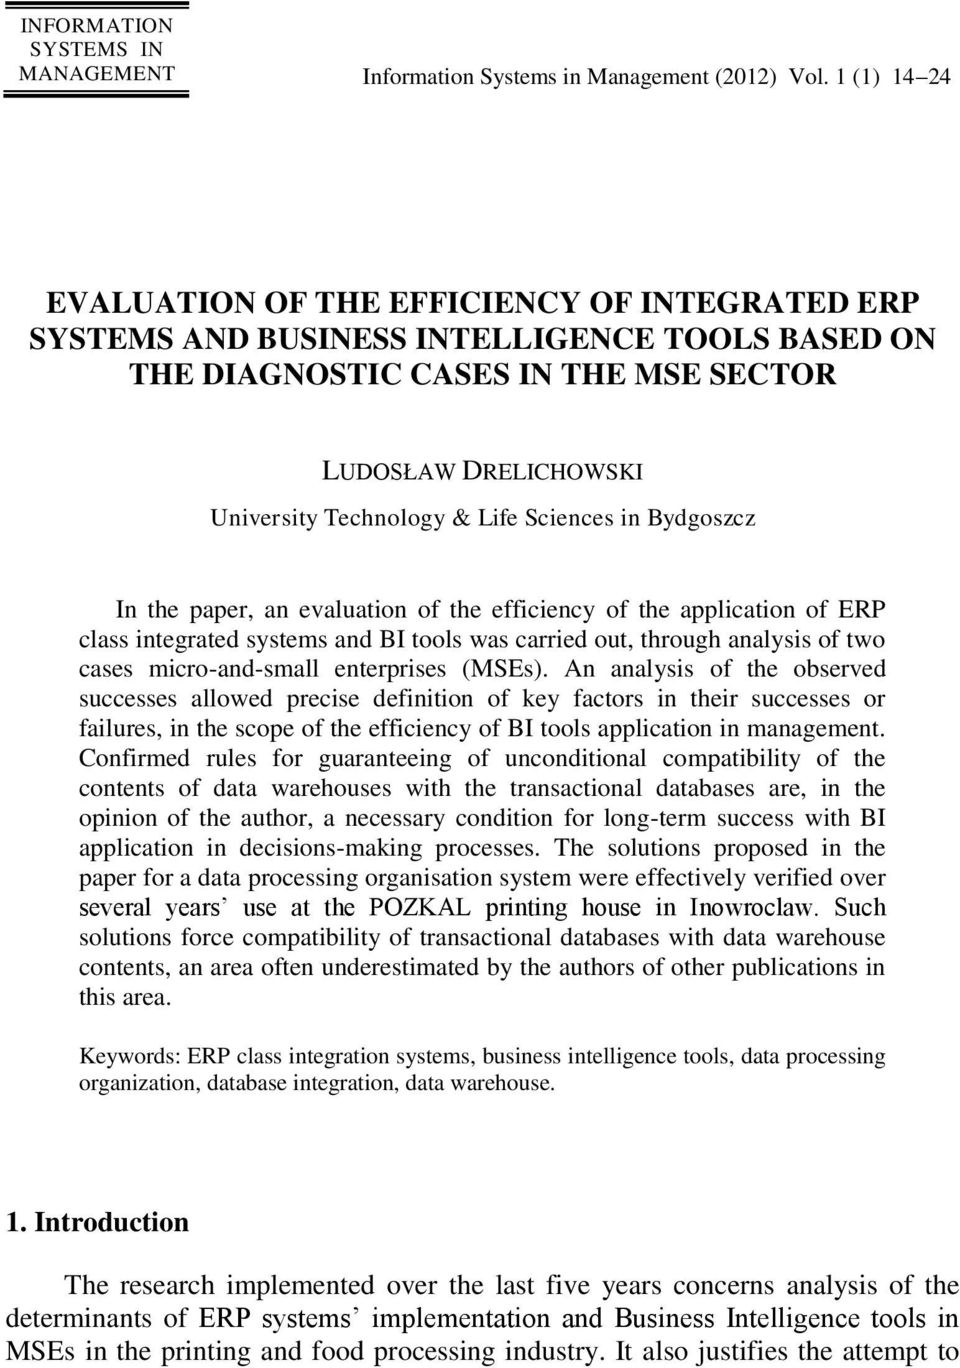 Sciences in Bydgoszcz In the paper, an evaluation of the efficiency of the application of ERP class integrated systems and BI tools was carried out, through analysis of two cases micro-and-small